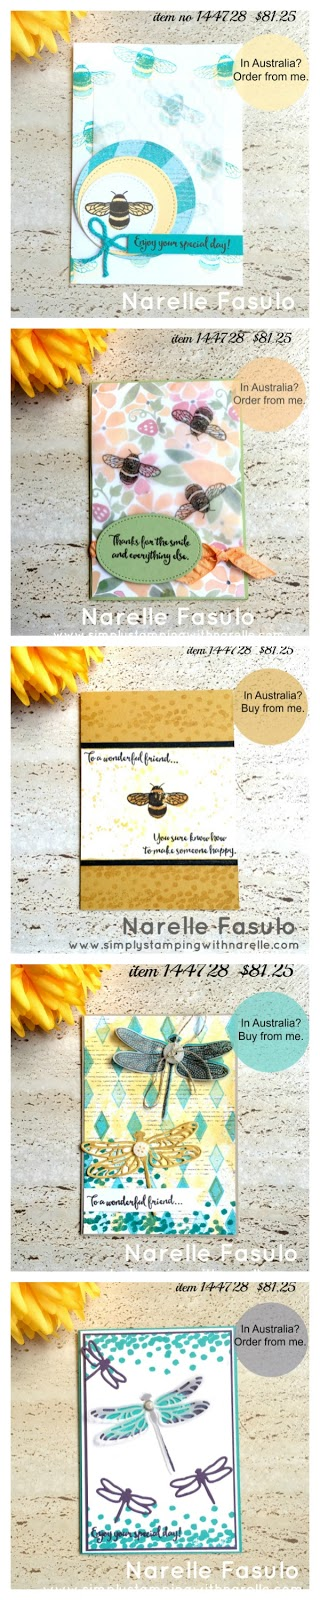 Stamping By Mail - Simply Stamping with Narelle - register here - https://goo.gl/07b7rQ